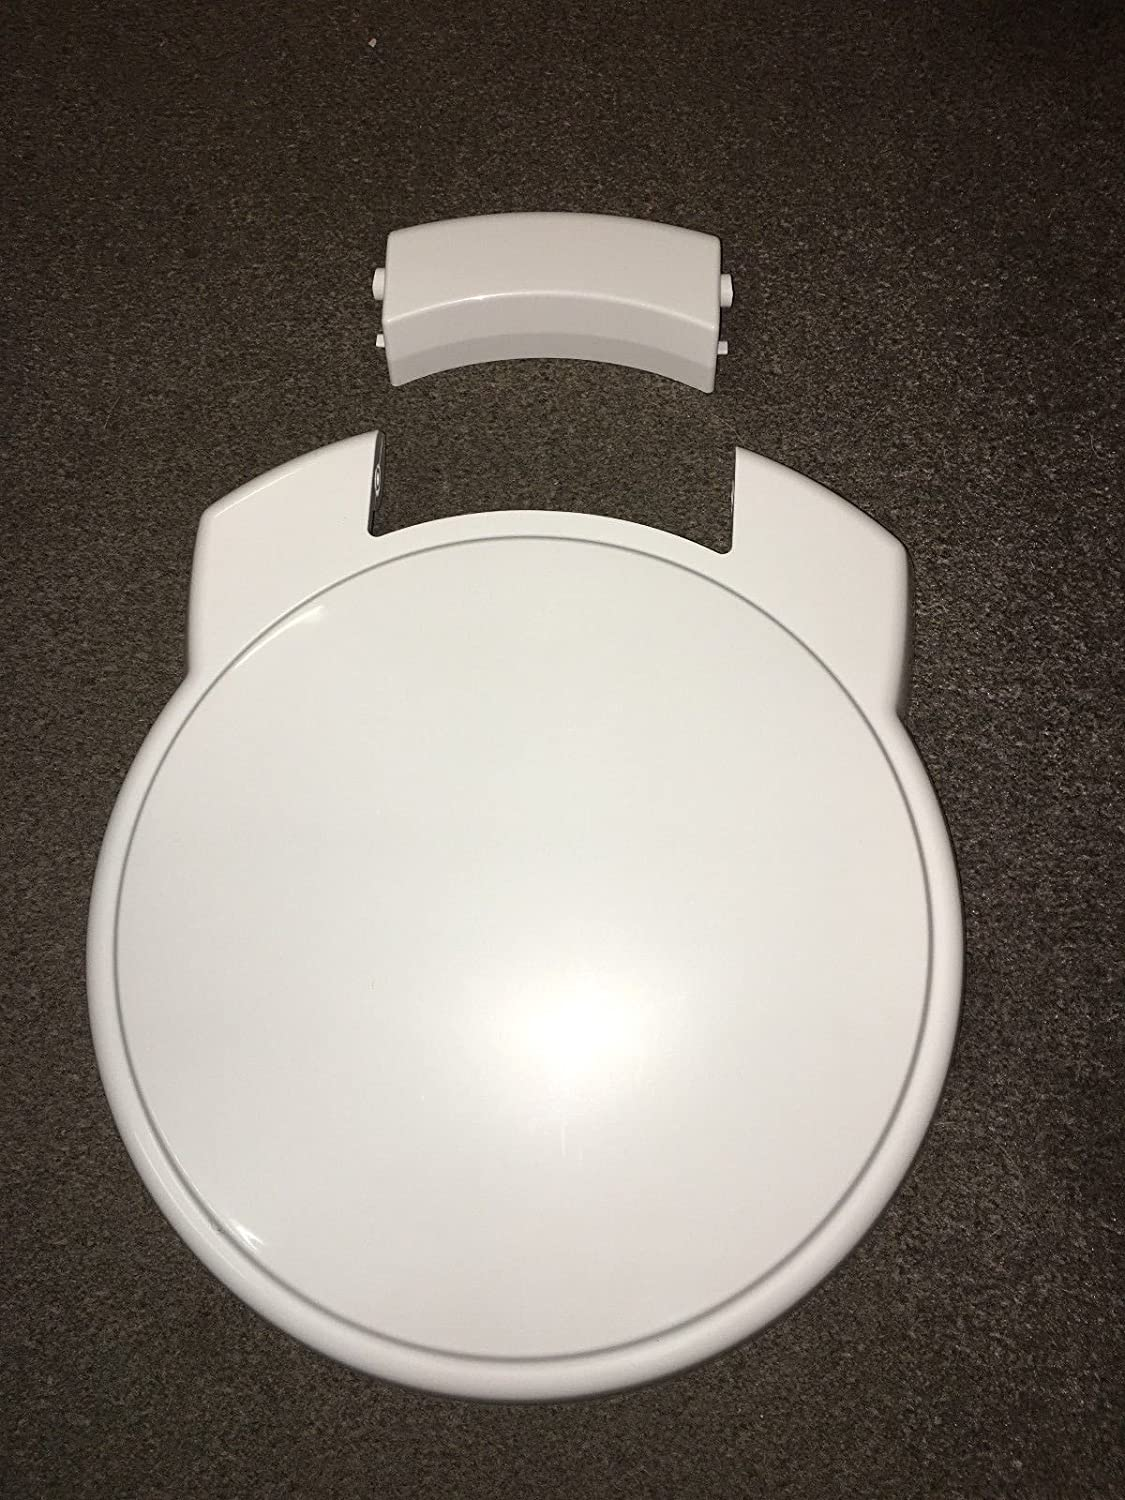 S Thetford Campingbedarf Toilet Seat and Lid for Toilet//CS C263 CSW 37903